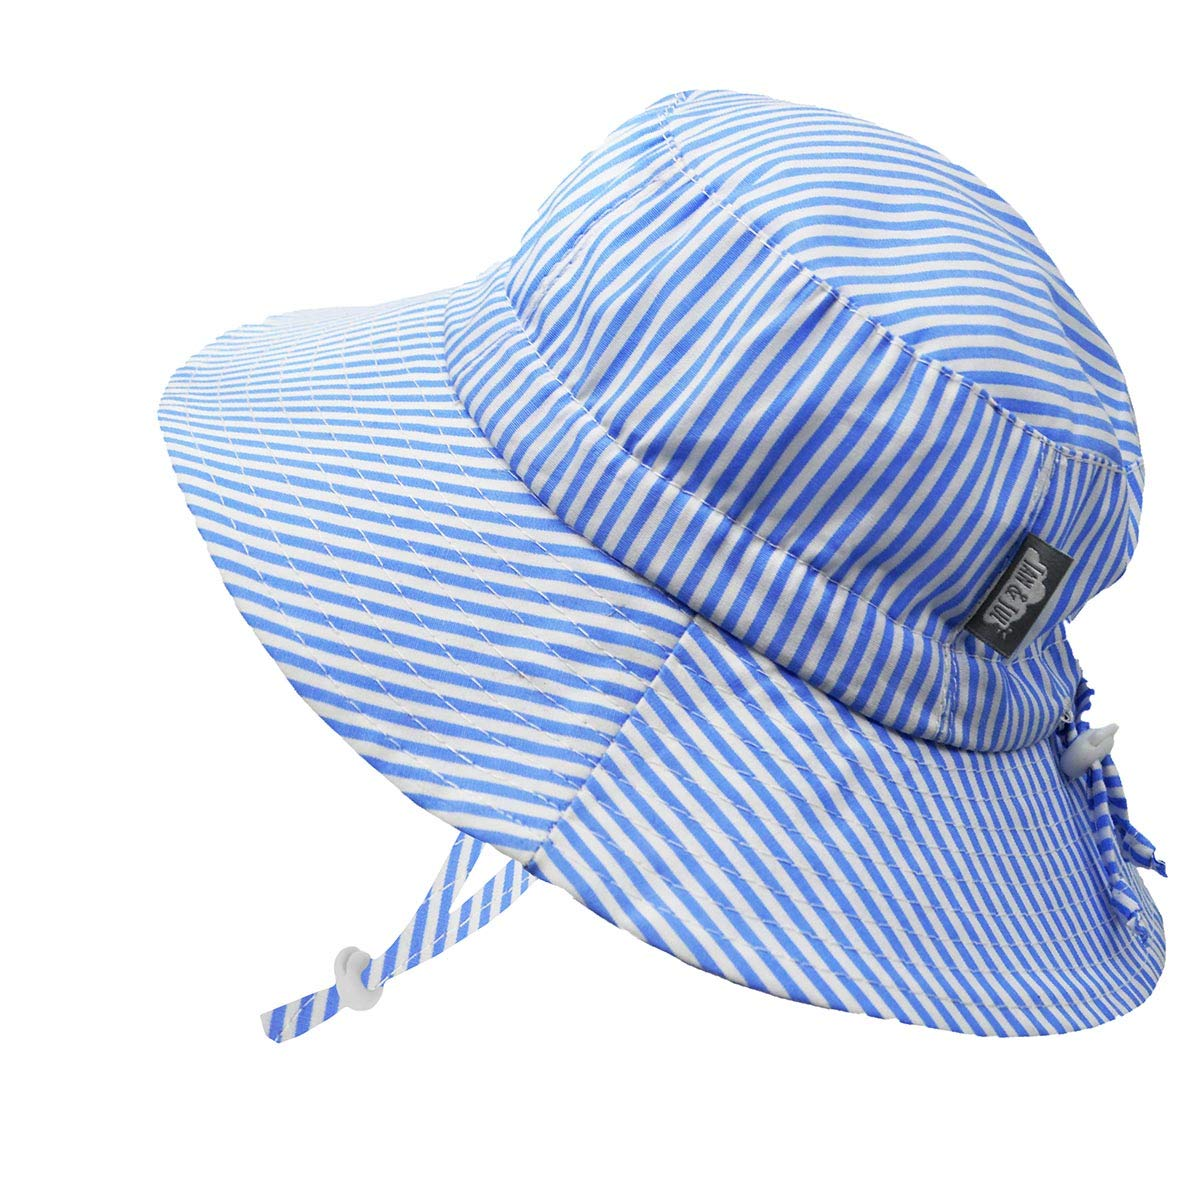 Adjustable for Growth Jan /& Jul Baby Toddler Kids Breathable Cotton Bucket Sun-Hat 50 UPF Stay-on